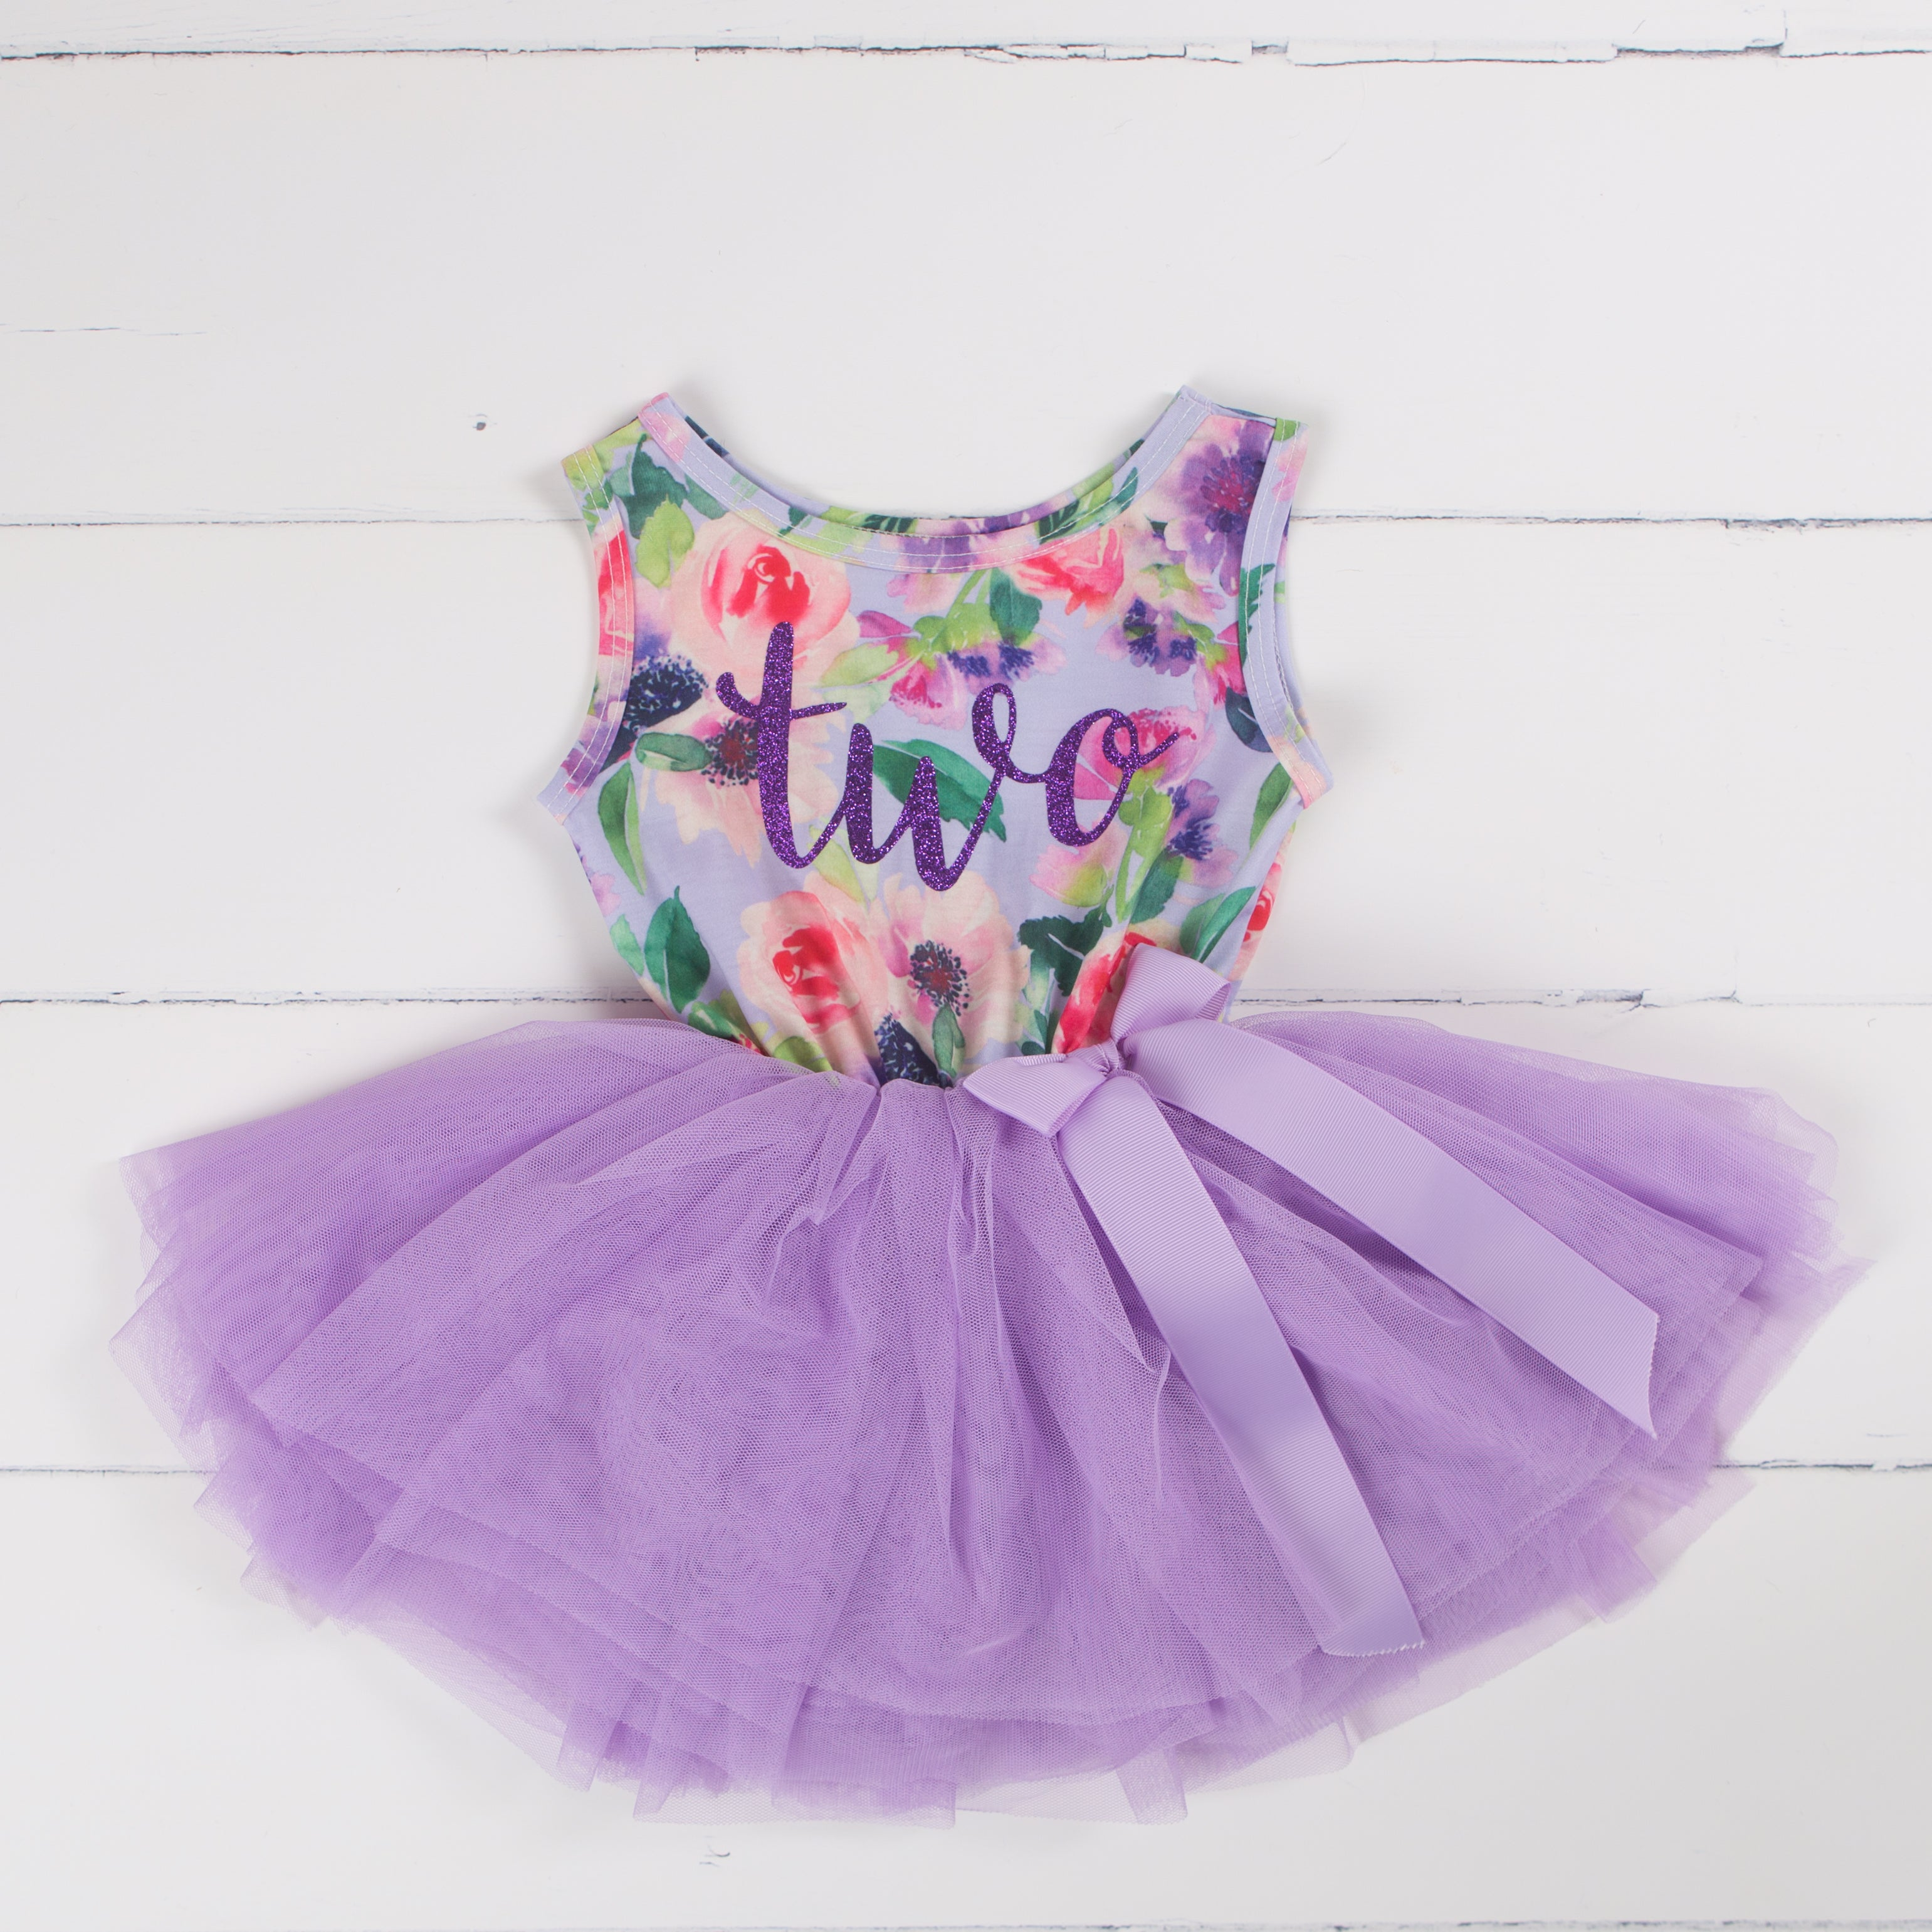 Second Birthday Party Outfit Lavender Floral Sleeveless Tutu Dress